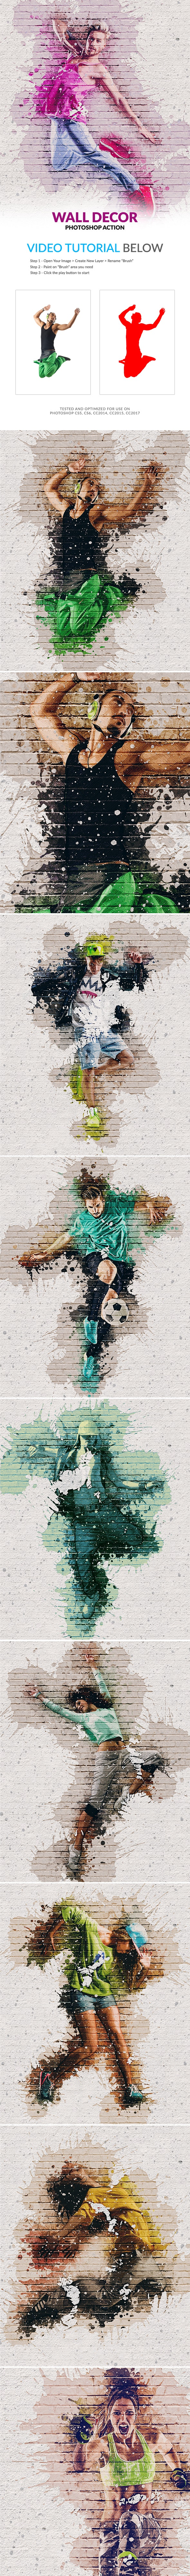 Wall Decor Photoshop Action - Photo Effects Actions